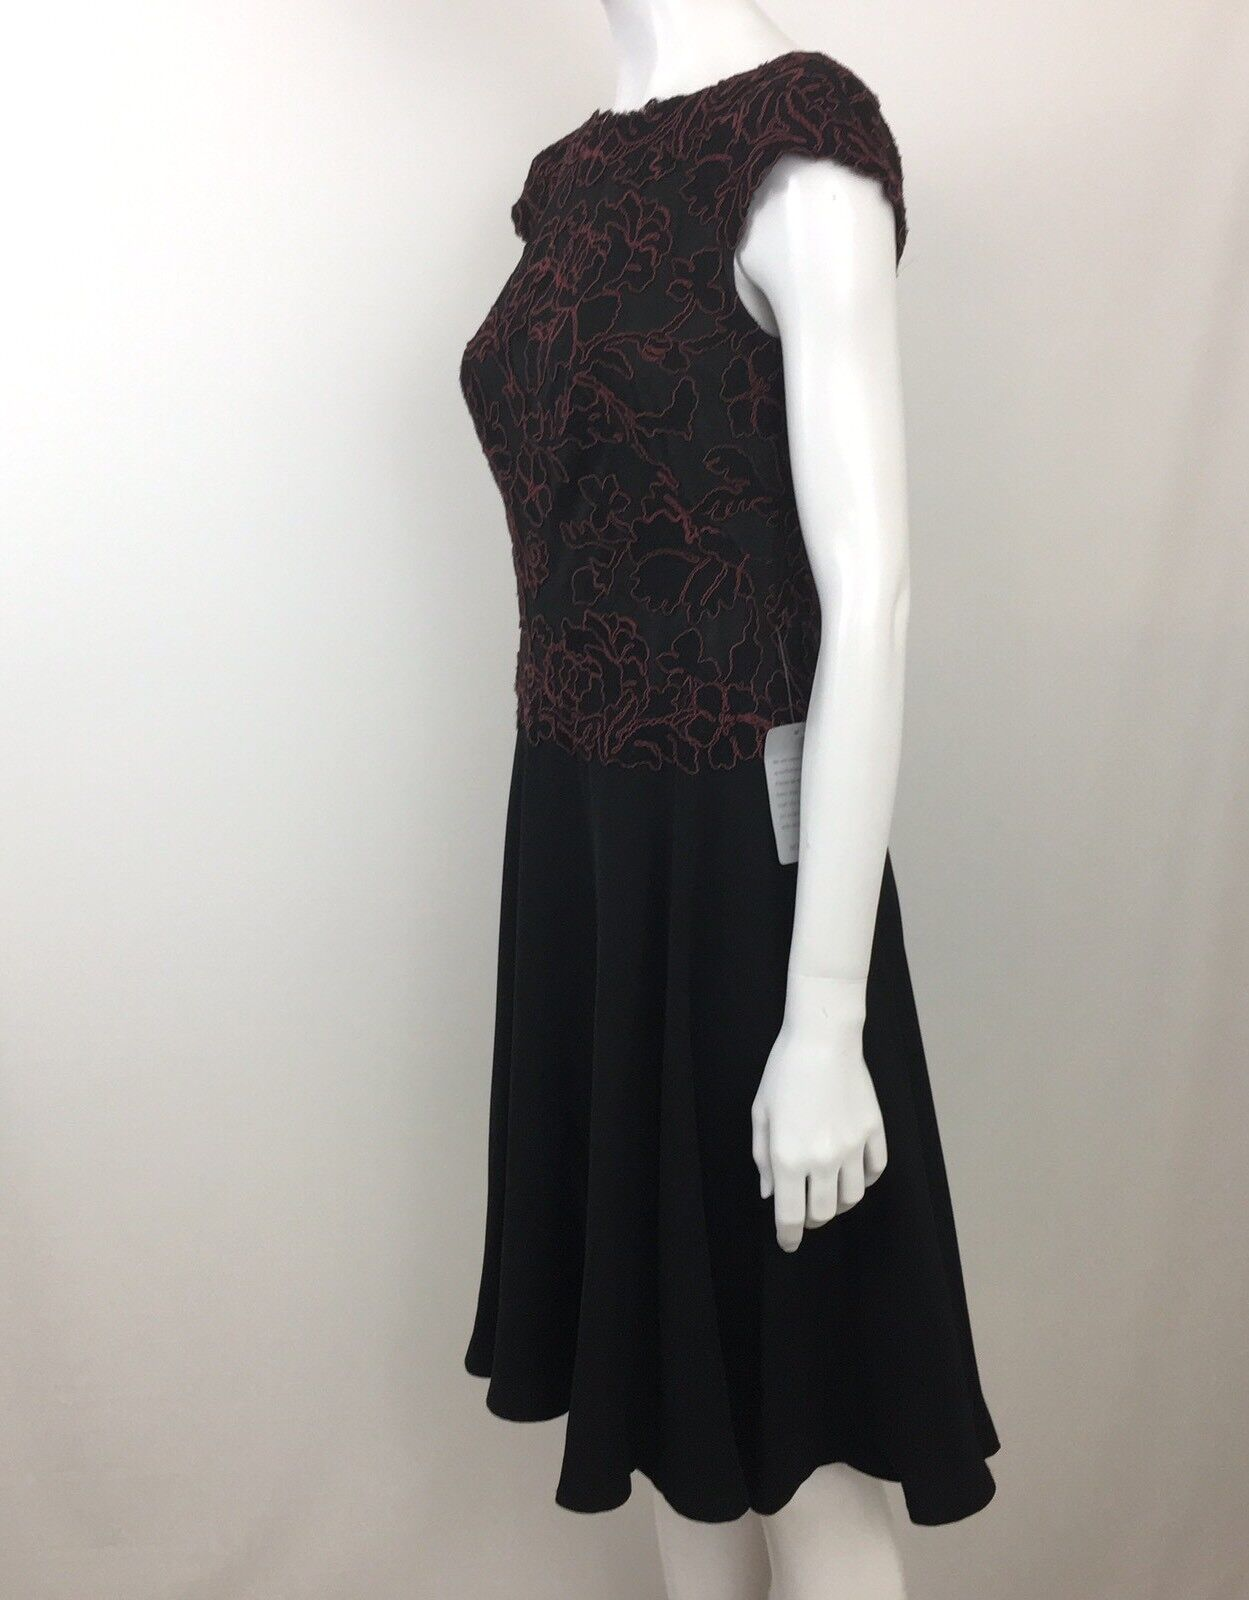 Tadashi Shoji Floral Embroidered Lace Fit & Flare Party Party Party Dress Size 10P New 741cb1